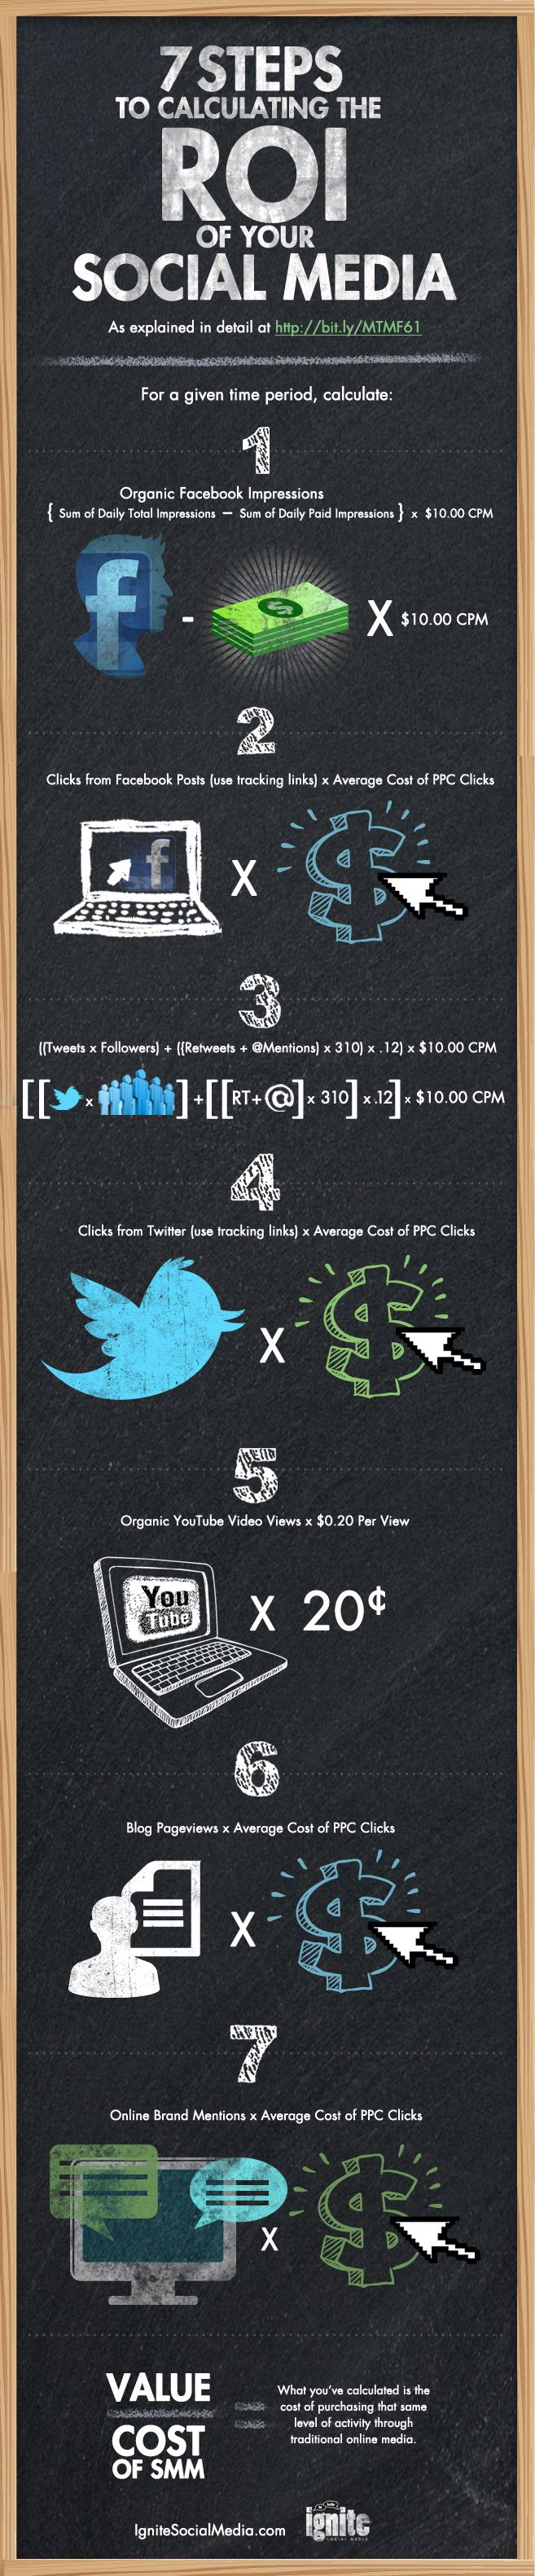 7 steps to calculate the ROI of your Social Media #infographic